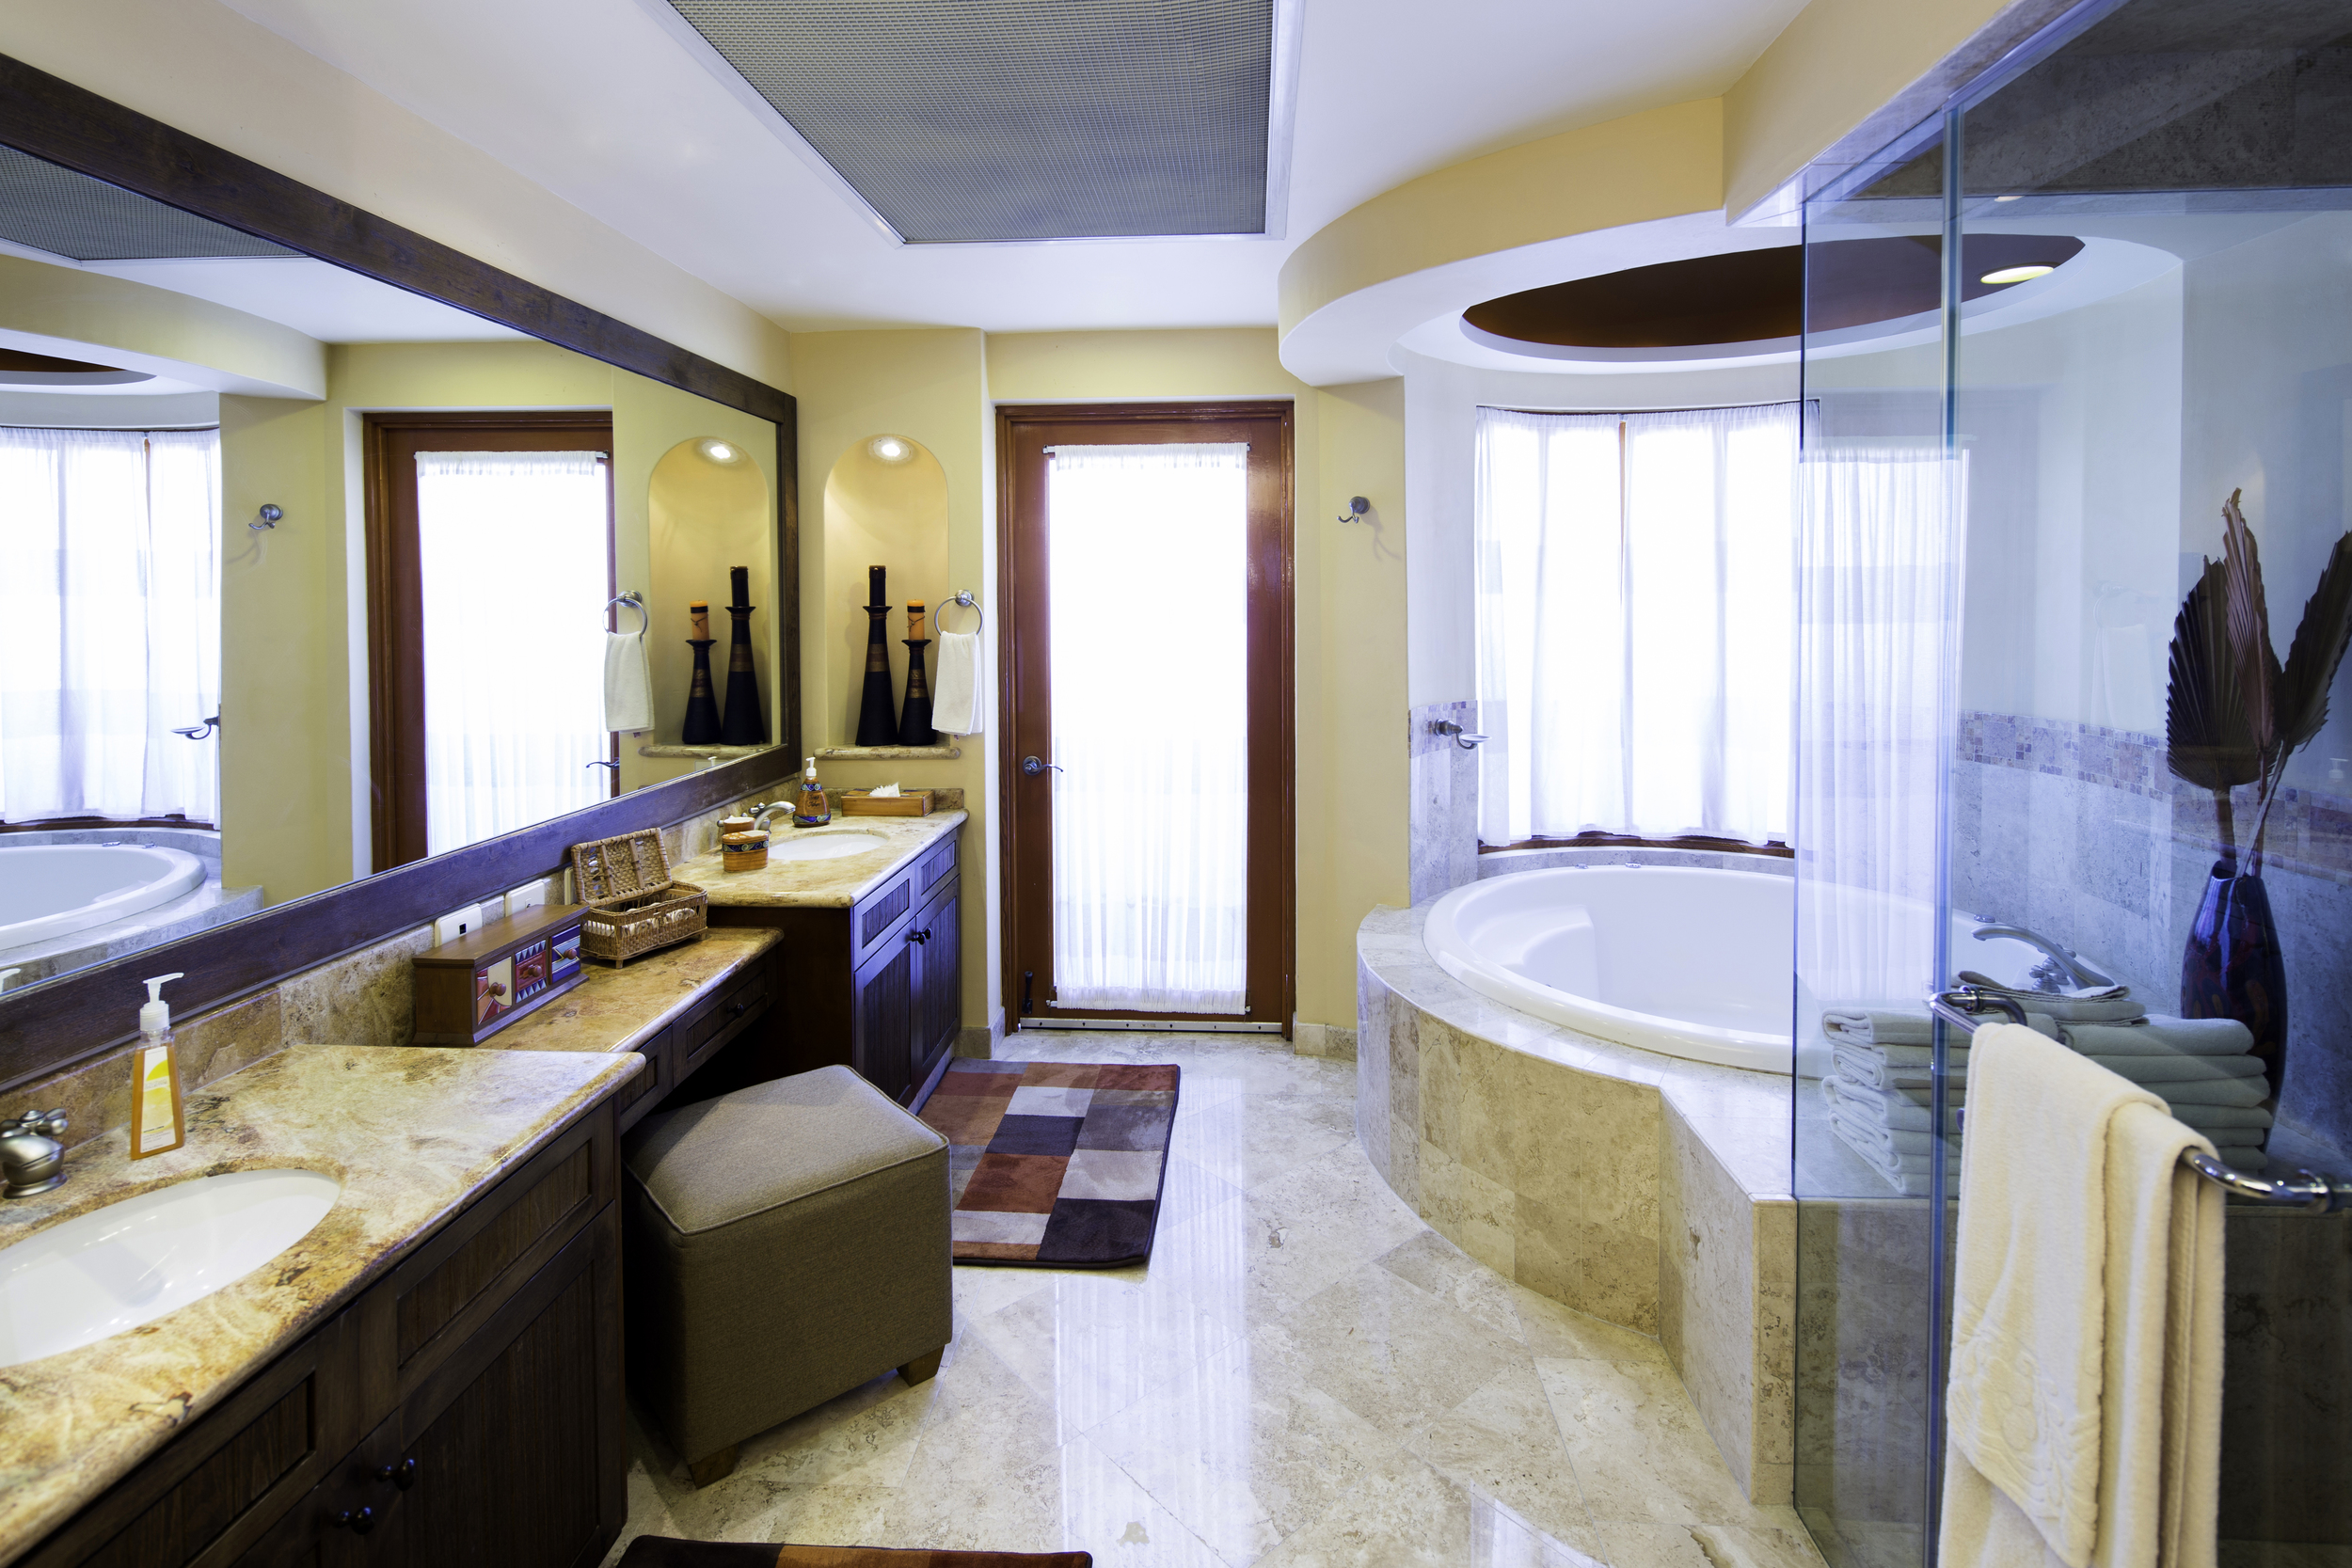 Master Bedroom Bath - Steam Shower, Tub and Door to Terrace